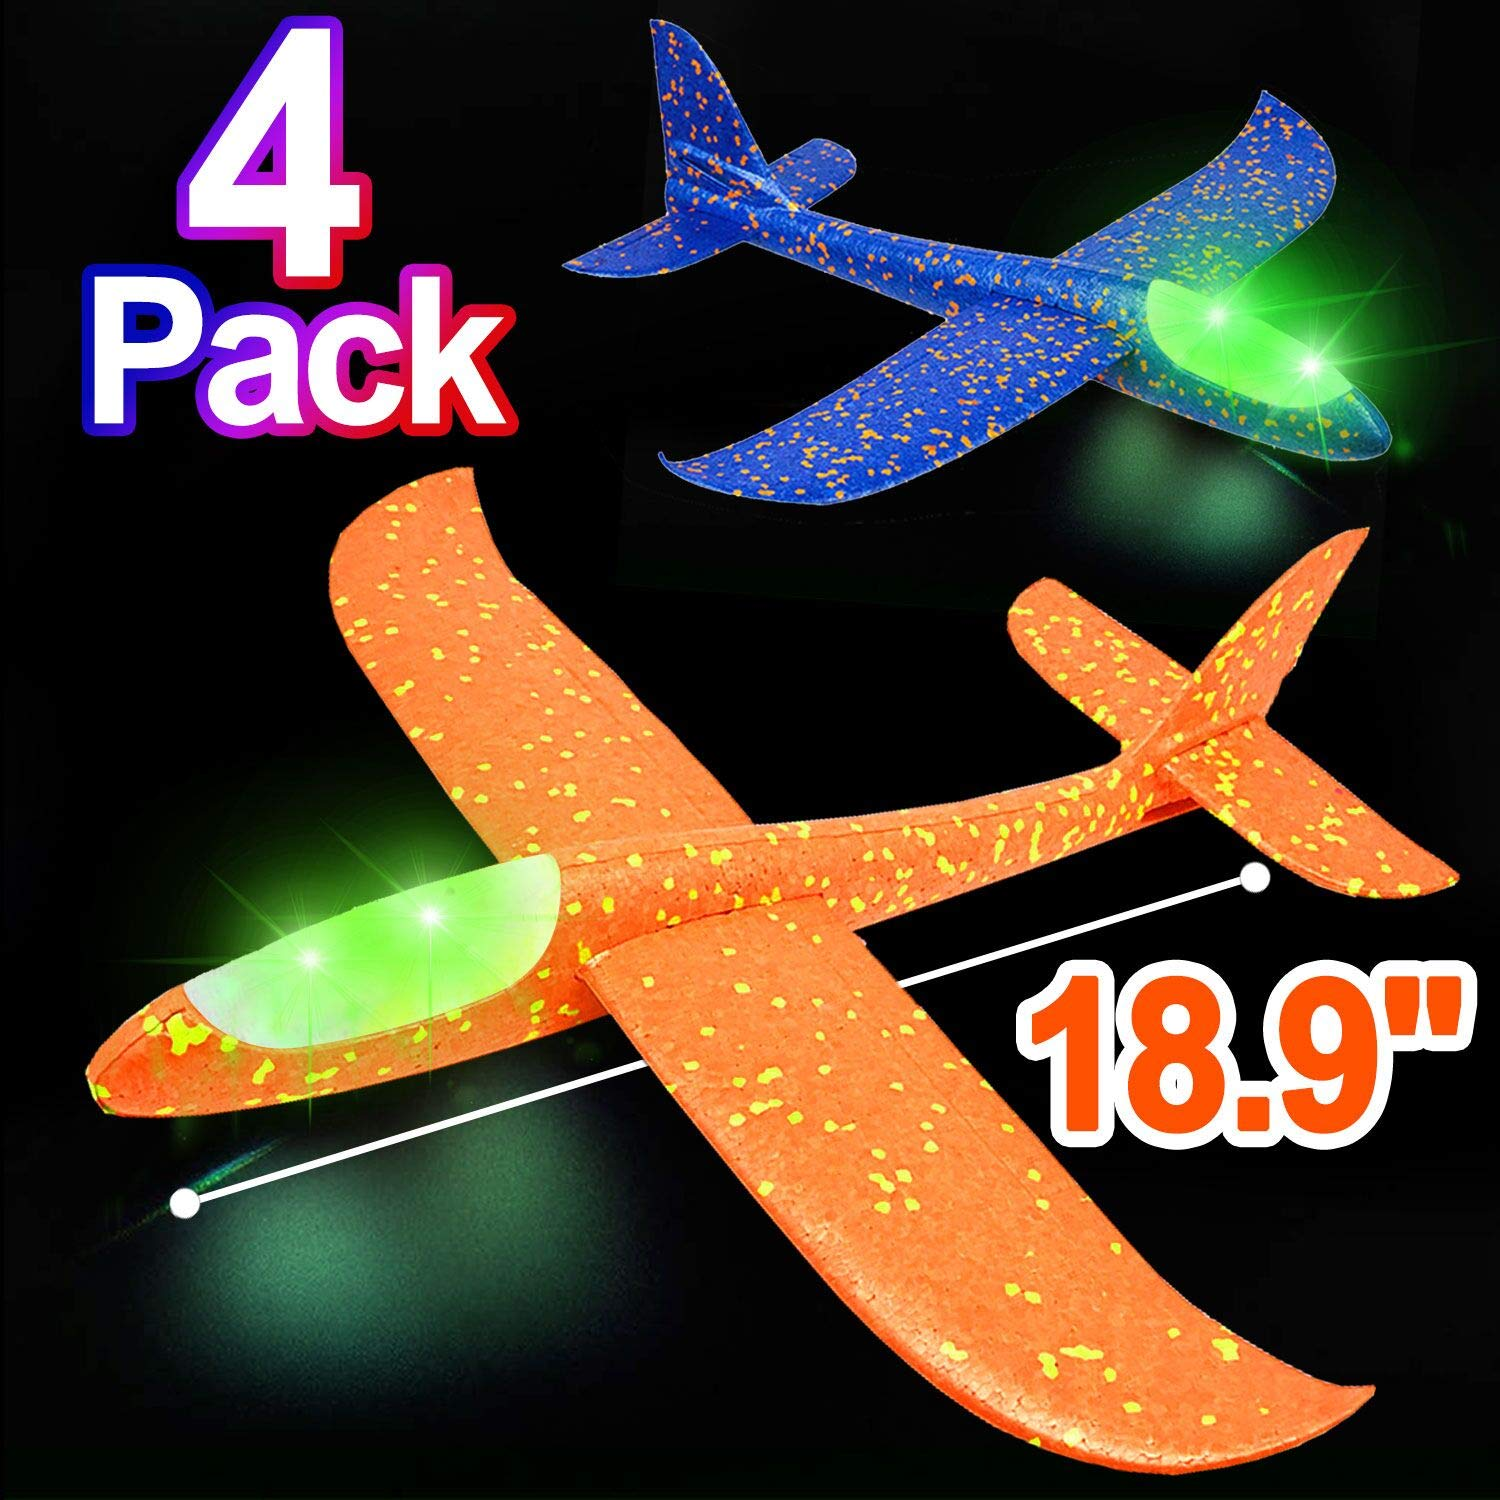 4 Pack 18.9'' Foam Airplane Toys for Kids, Large LED Light Up Throwing Plane Foam Glider Airplane Outdoor Sport Flying Toys for Boys Girls, Flying Game Toy Gift for Kids (A- 4P LED Foam Airplane Toys)